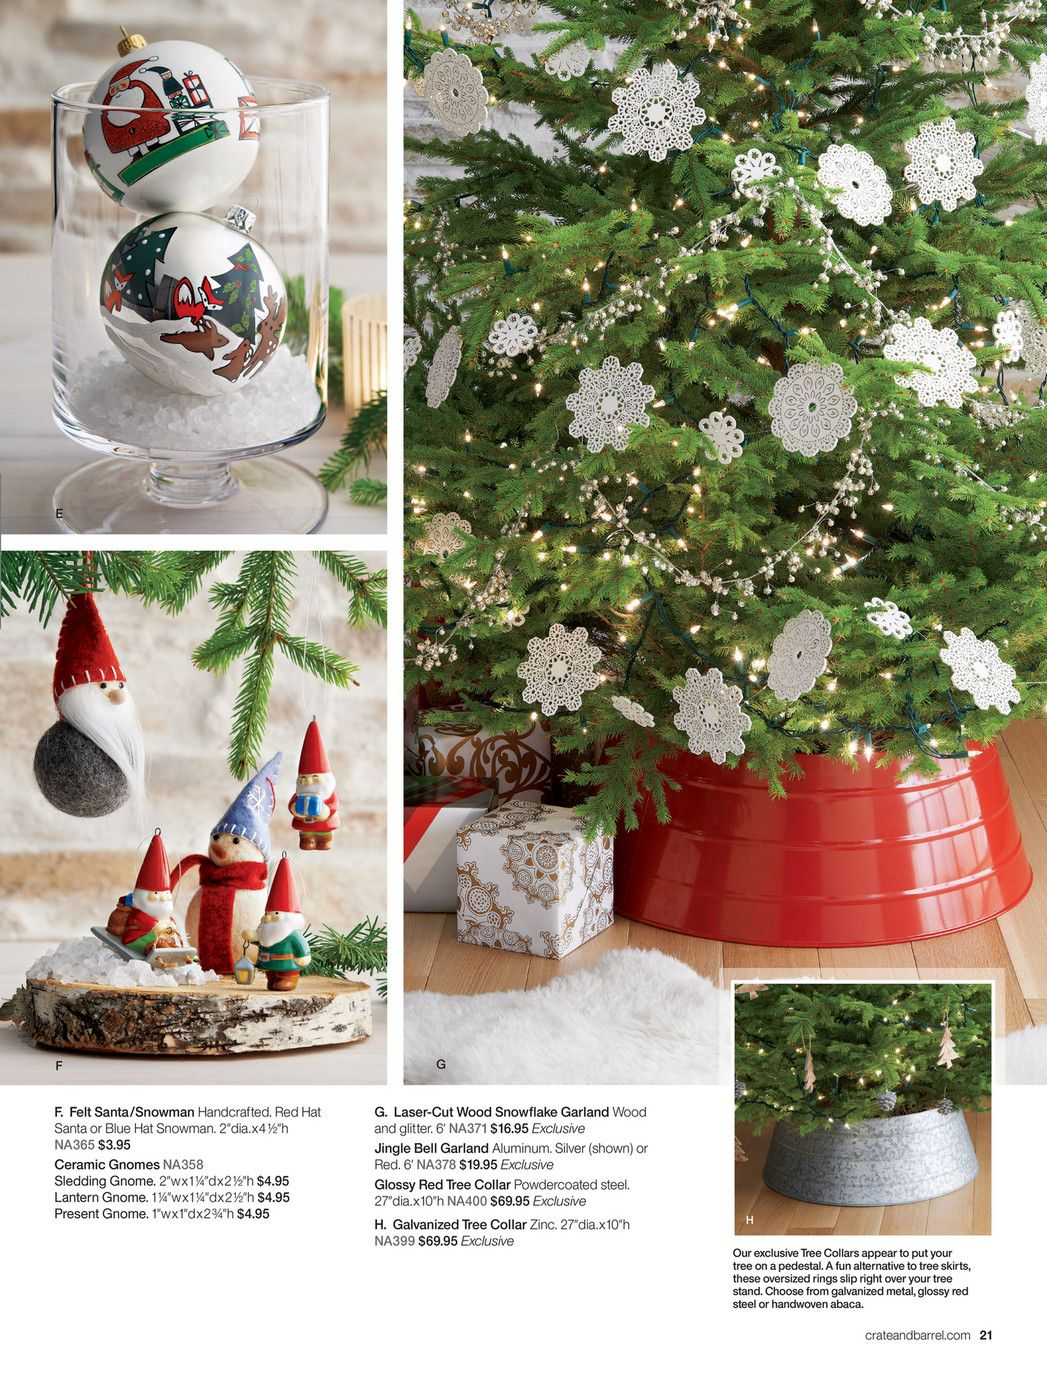 Christmas Crate And Barrel.Crate Barrel Holiday 2015 Page 20 21 Christmas Ideas